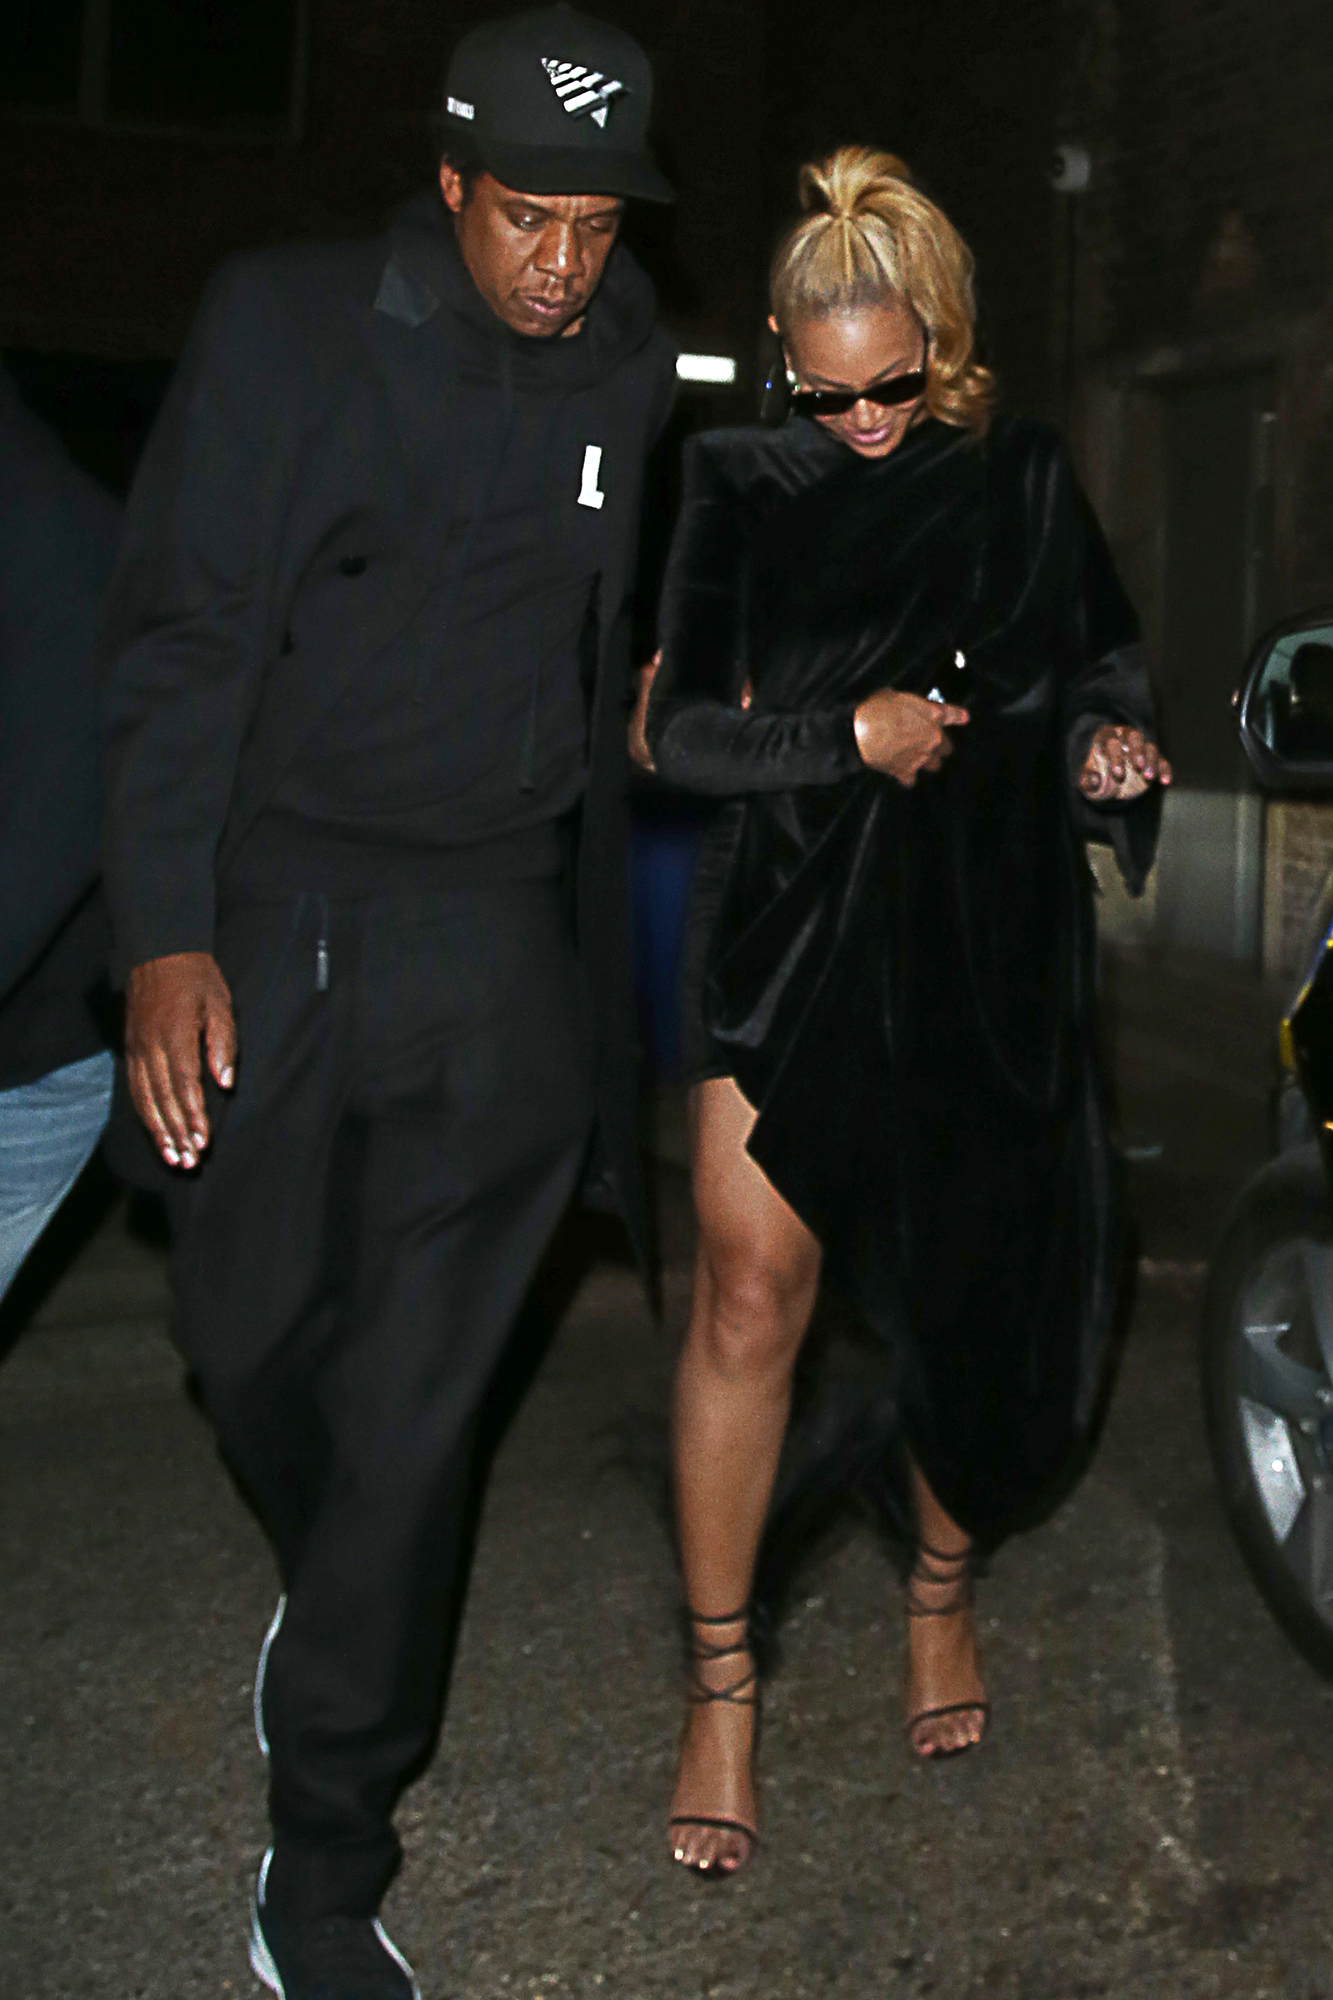 Beyonce And Jay Z Leaving The Arts Club At 3am In London